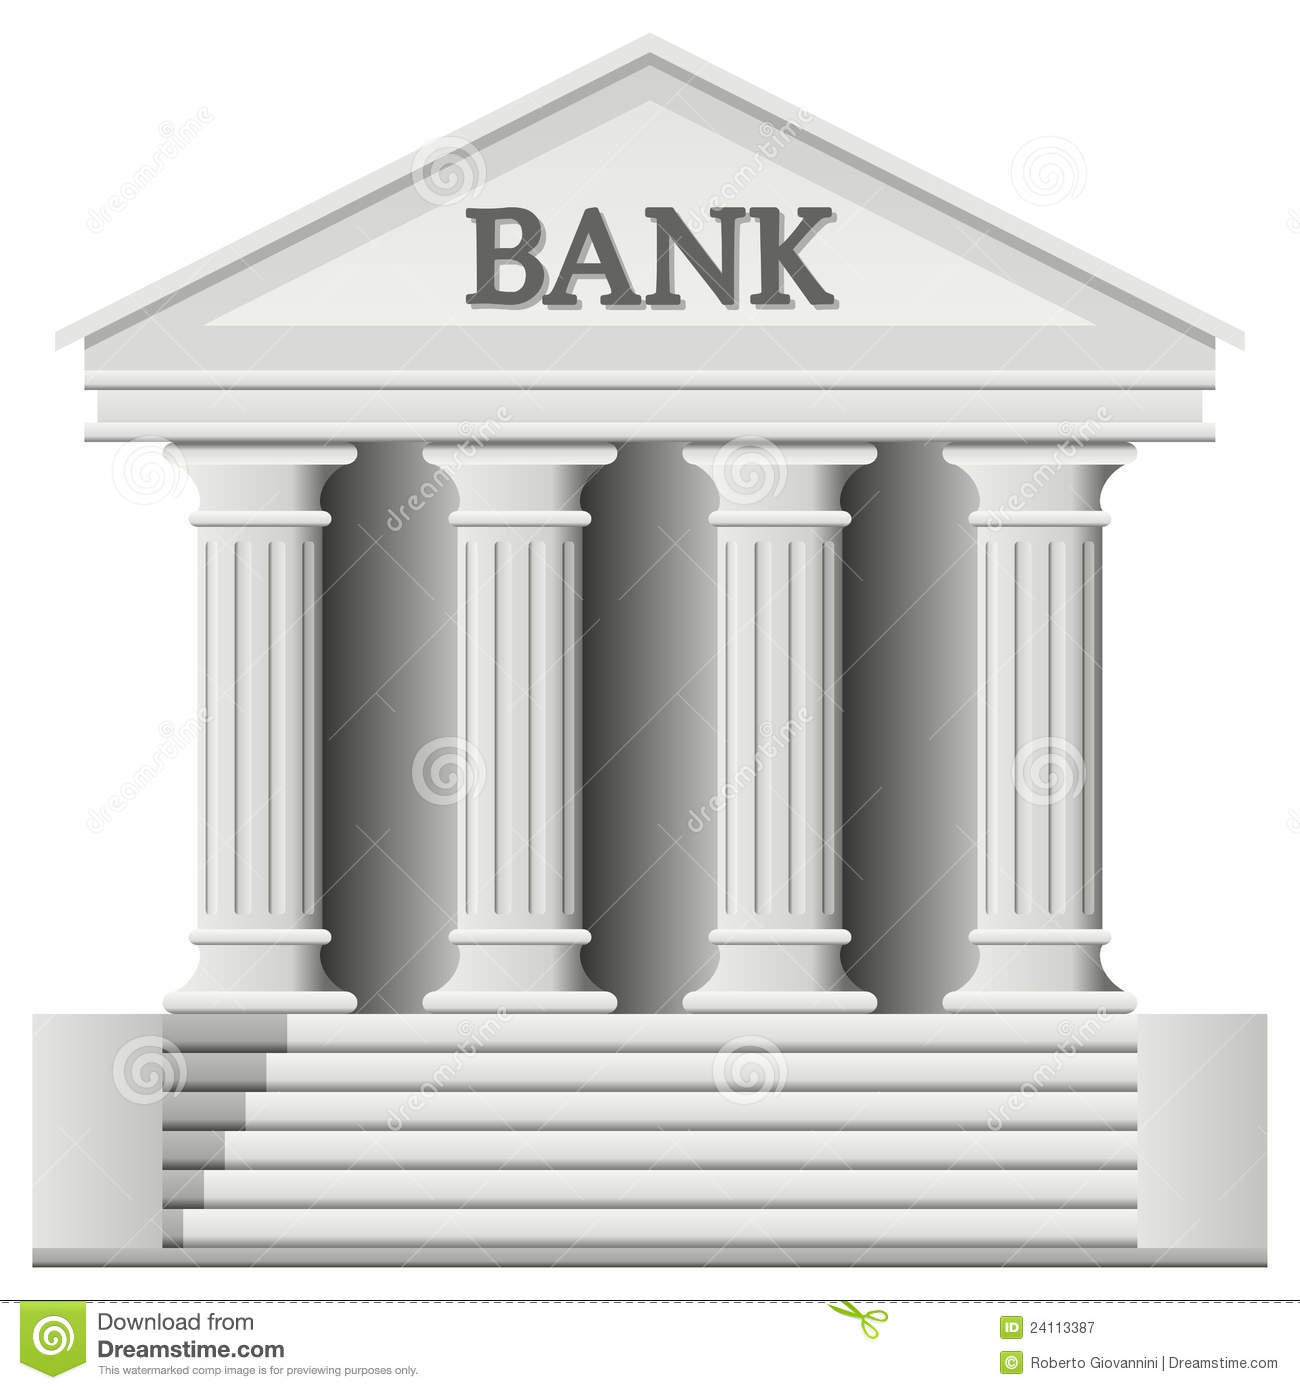 Bank Stock Illustrations.